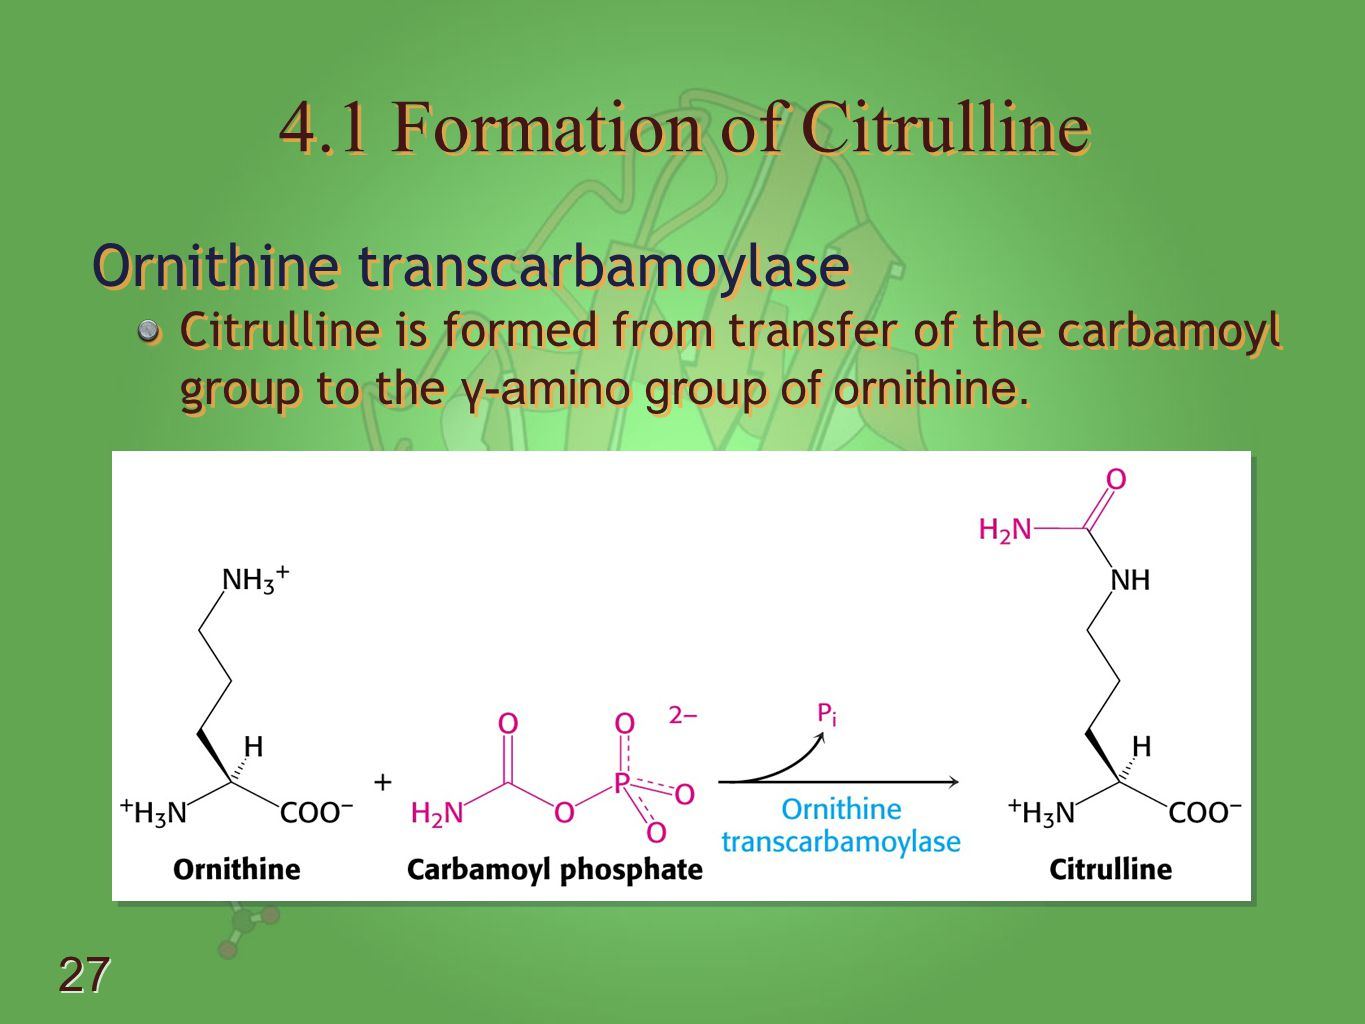 4.1 Formation of Citrulline